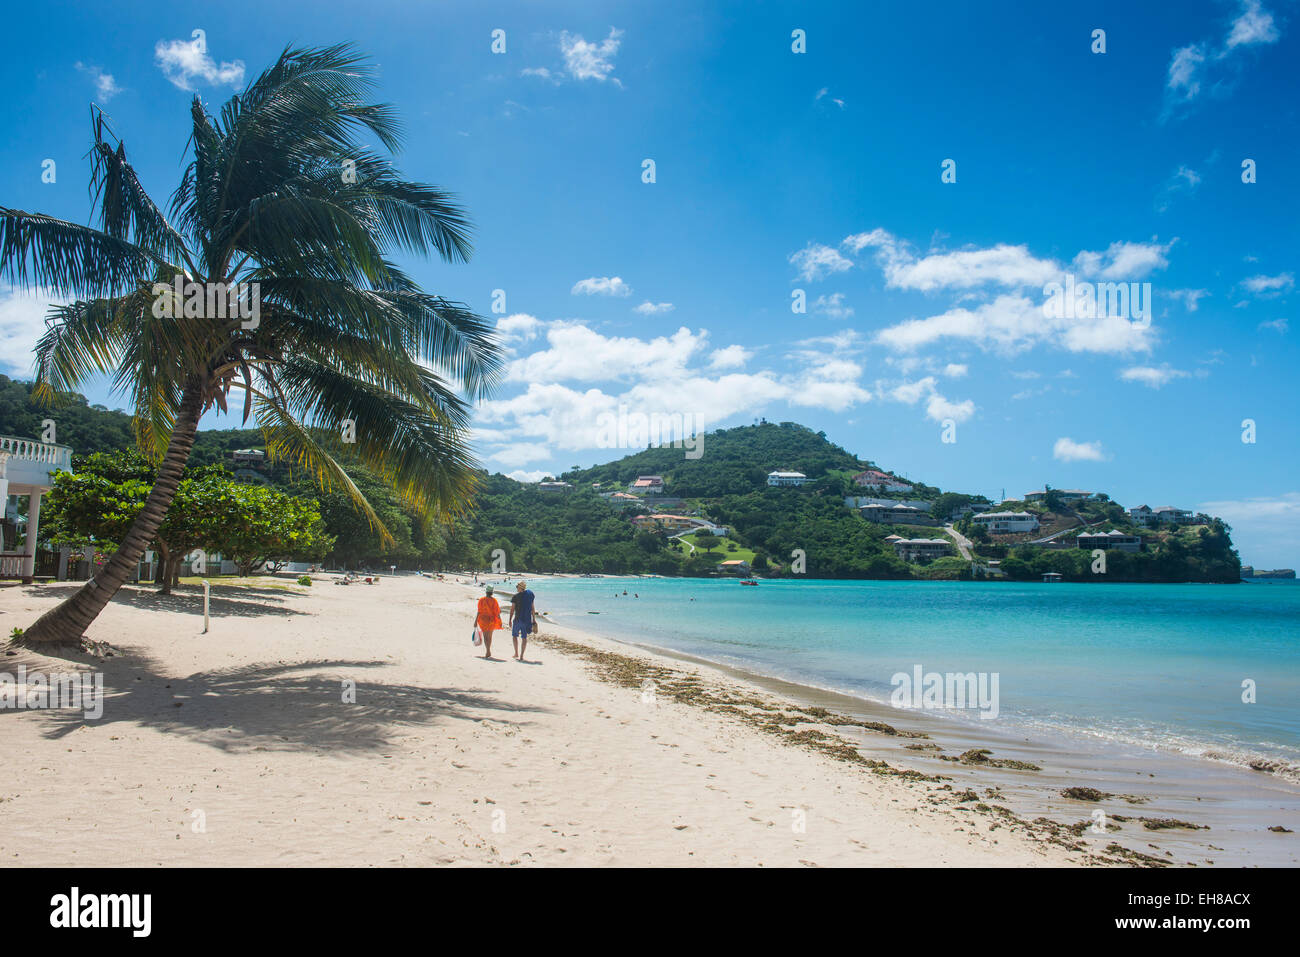 Mourne Rouge beach, Grenada, Windward Islands, West Indies, Caribbean, Central America - Stock Image